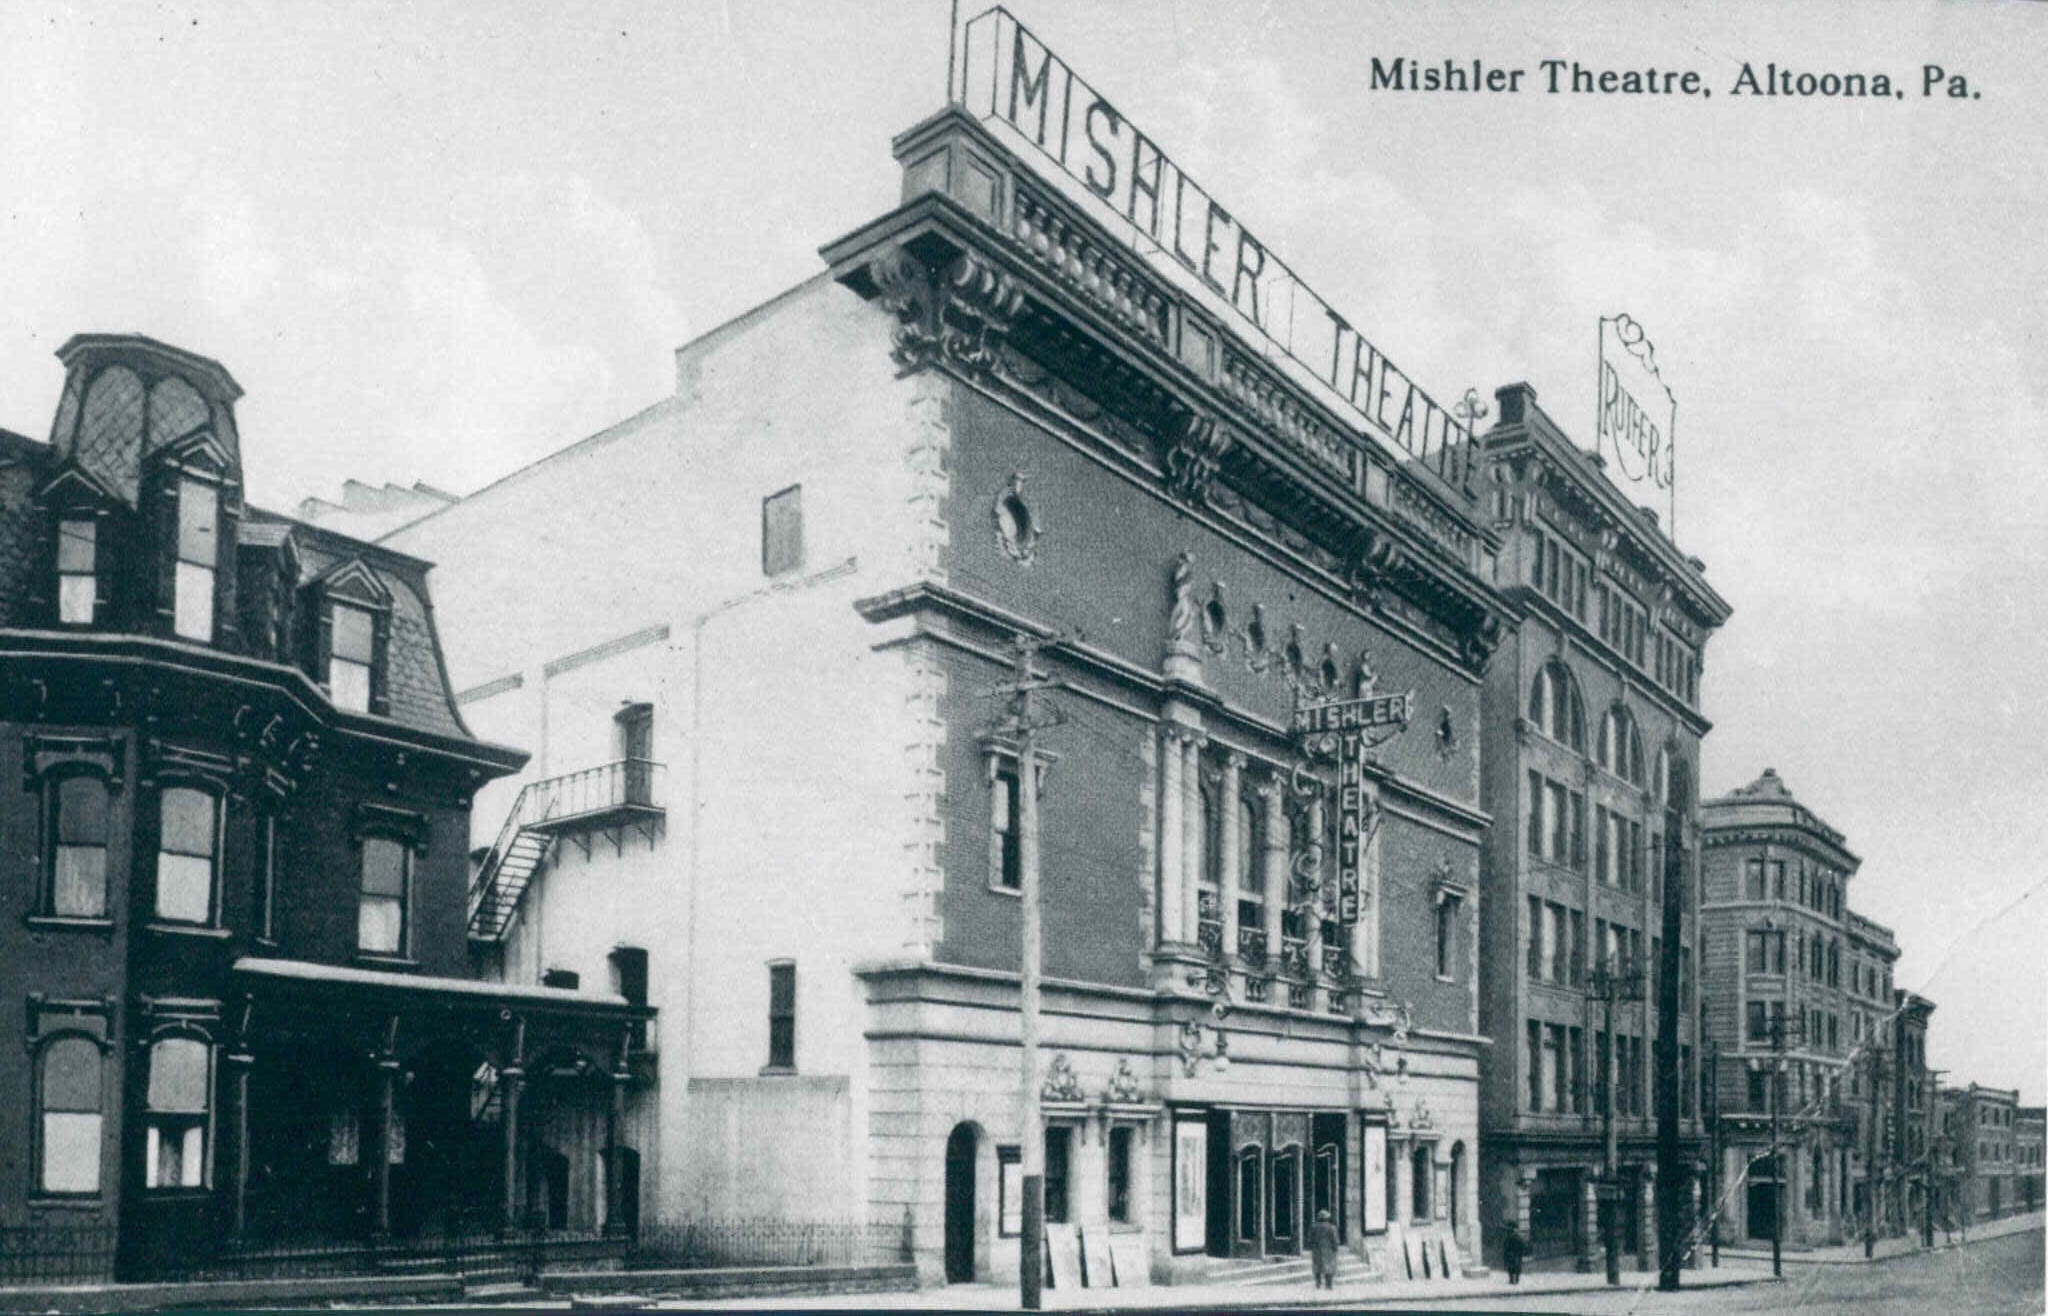 The Mishler Theatre shortly after construction